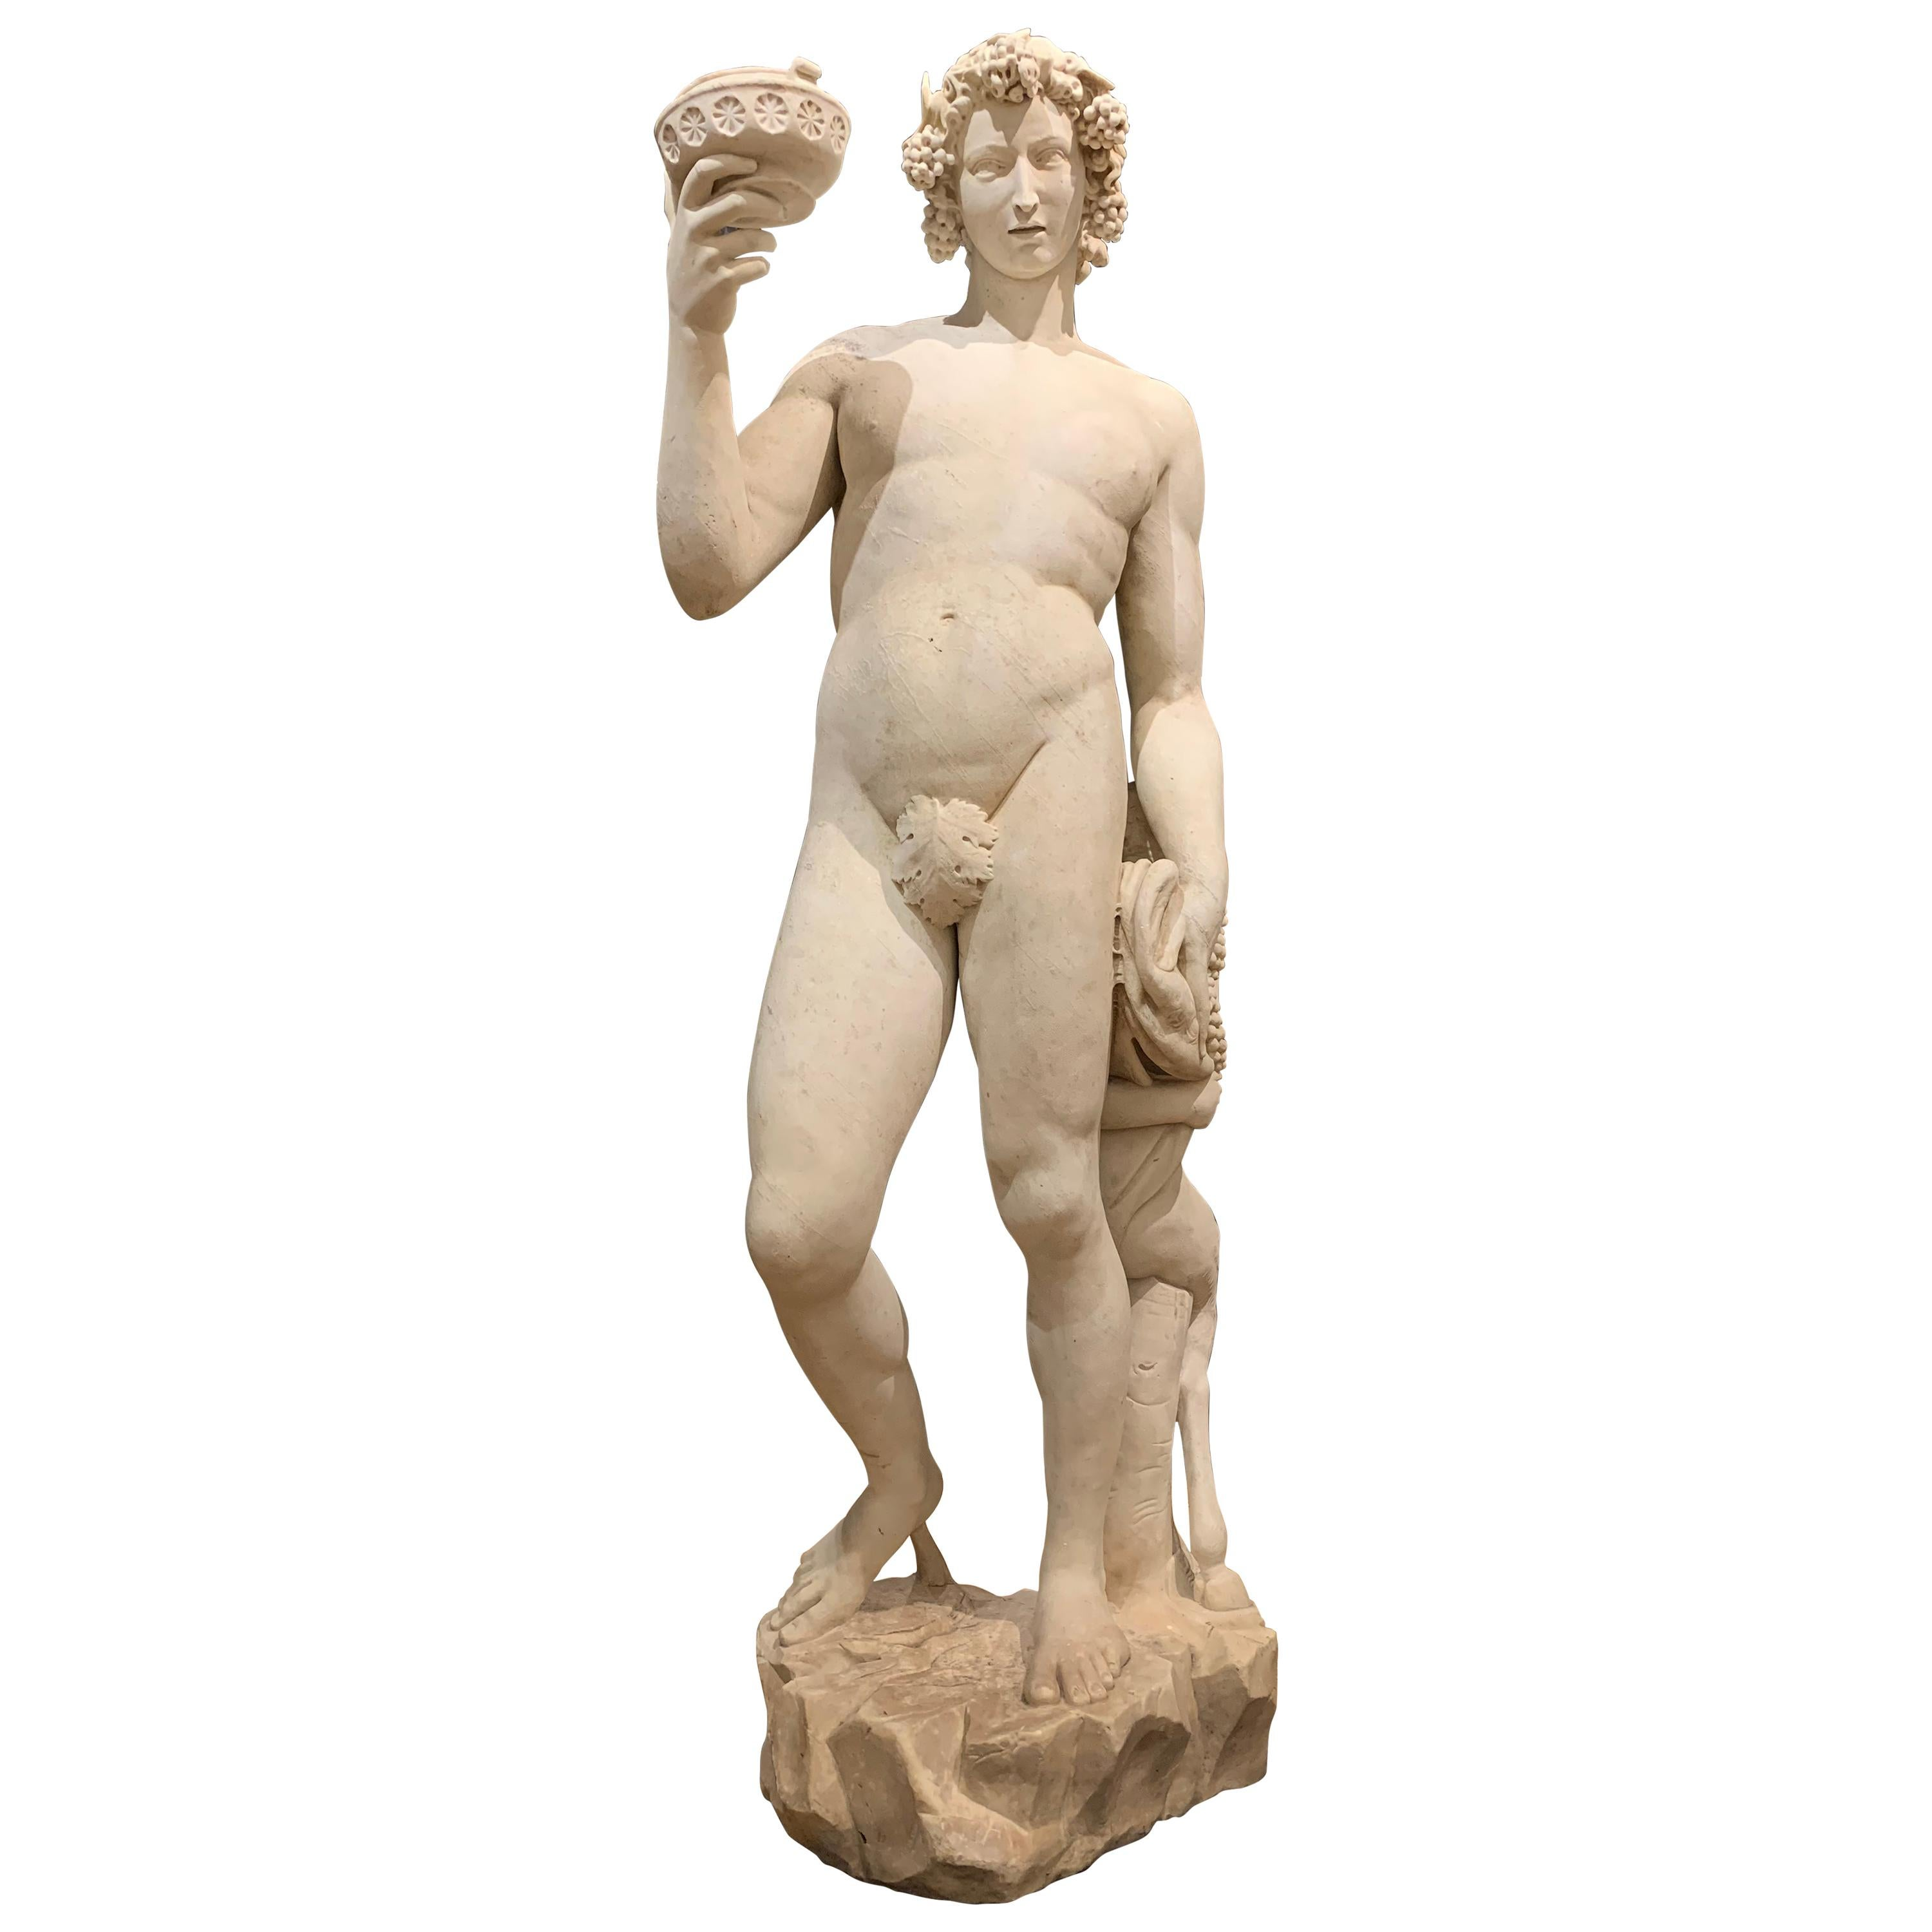 19th Century over Life-Size Marble Statue of Bacchus after Michelangelo